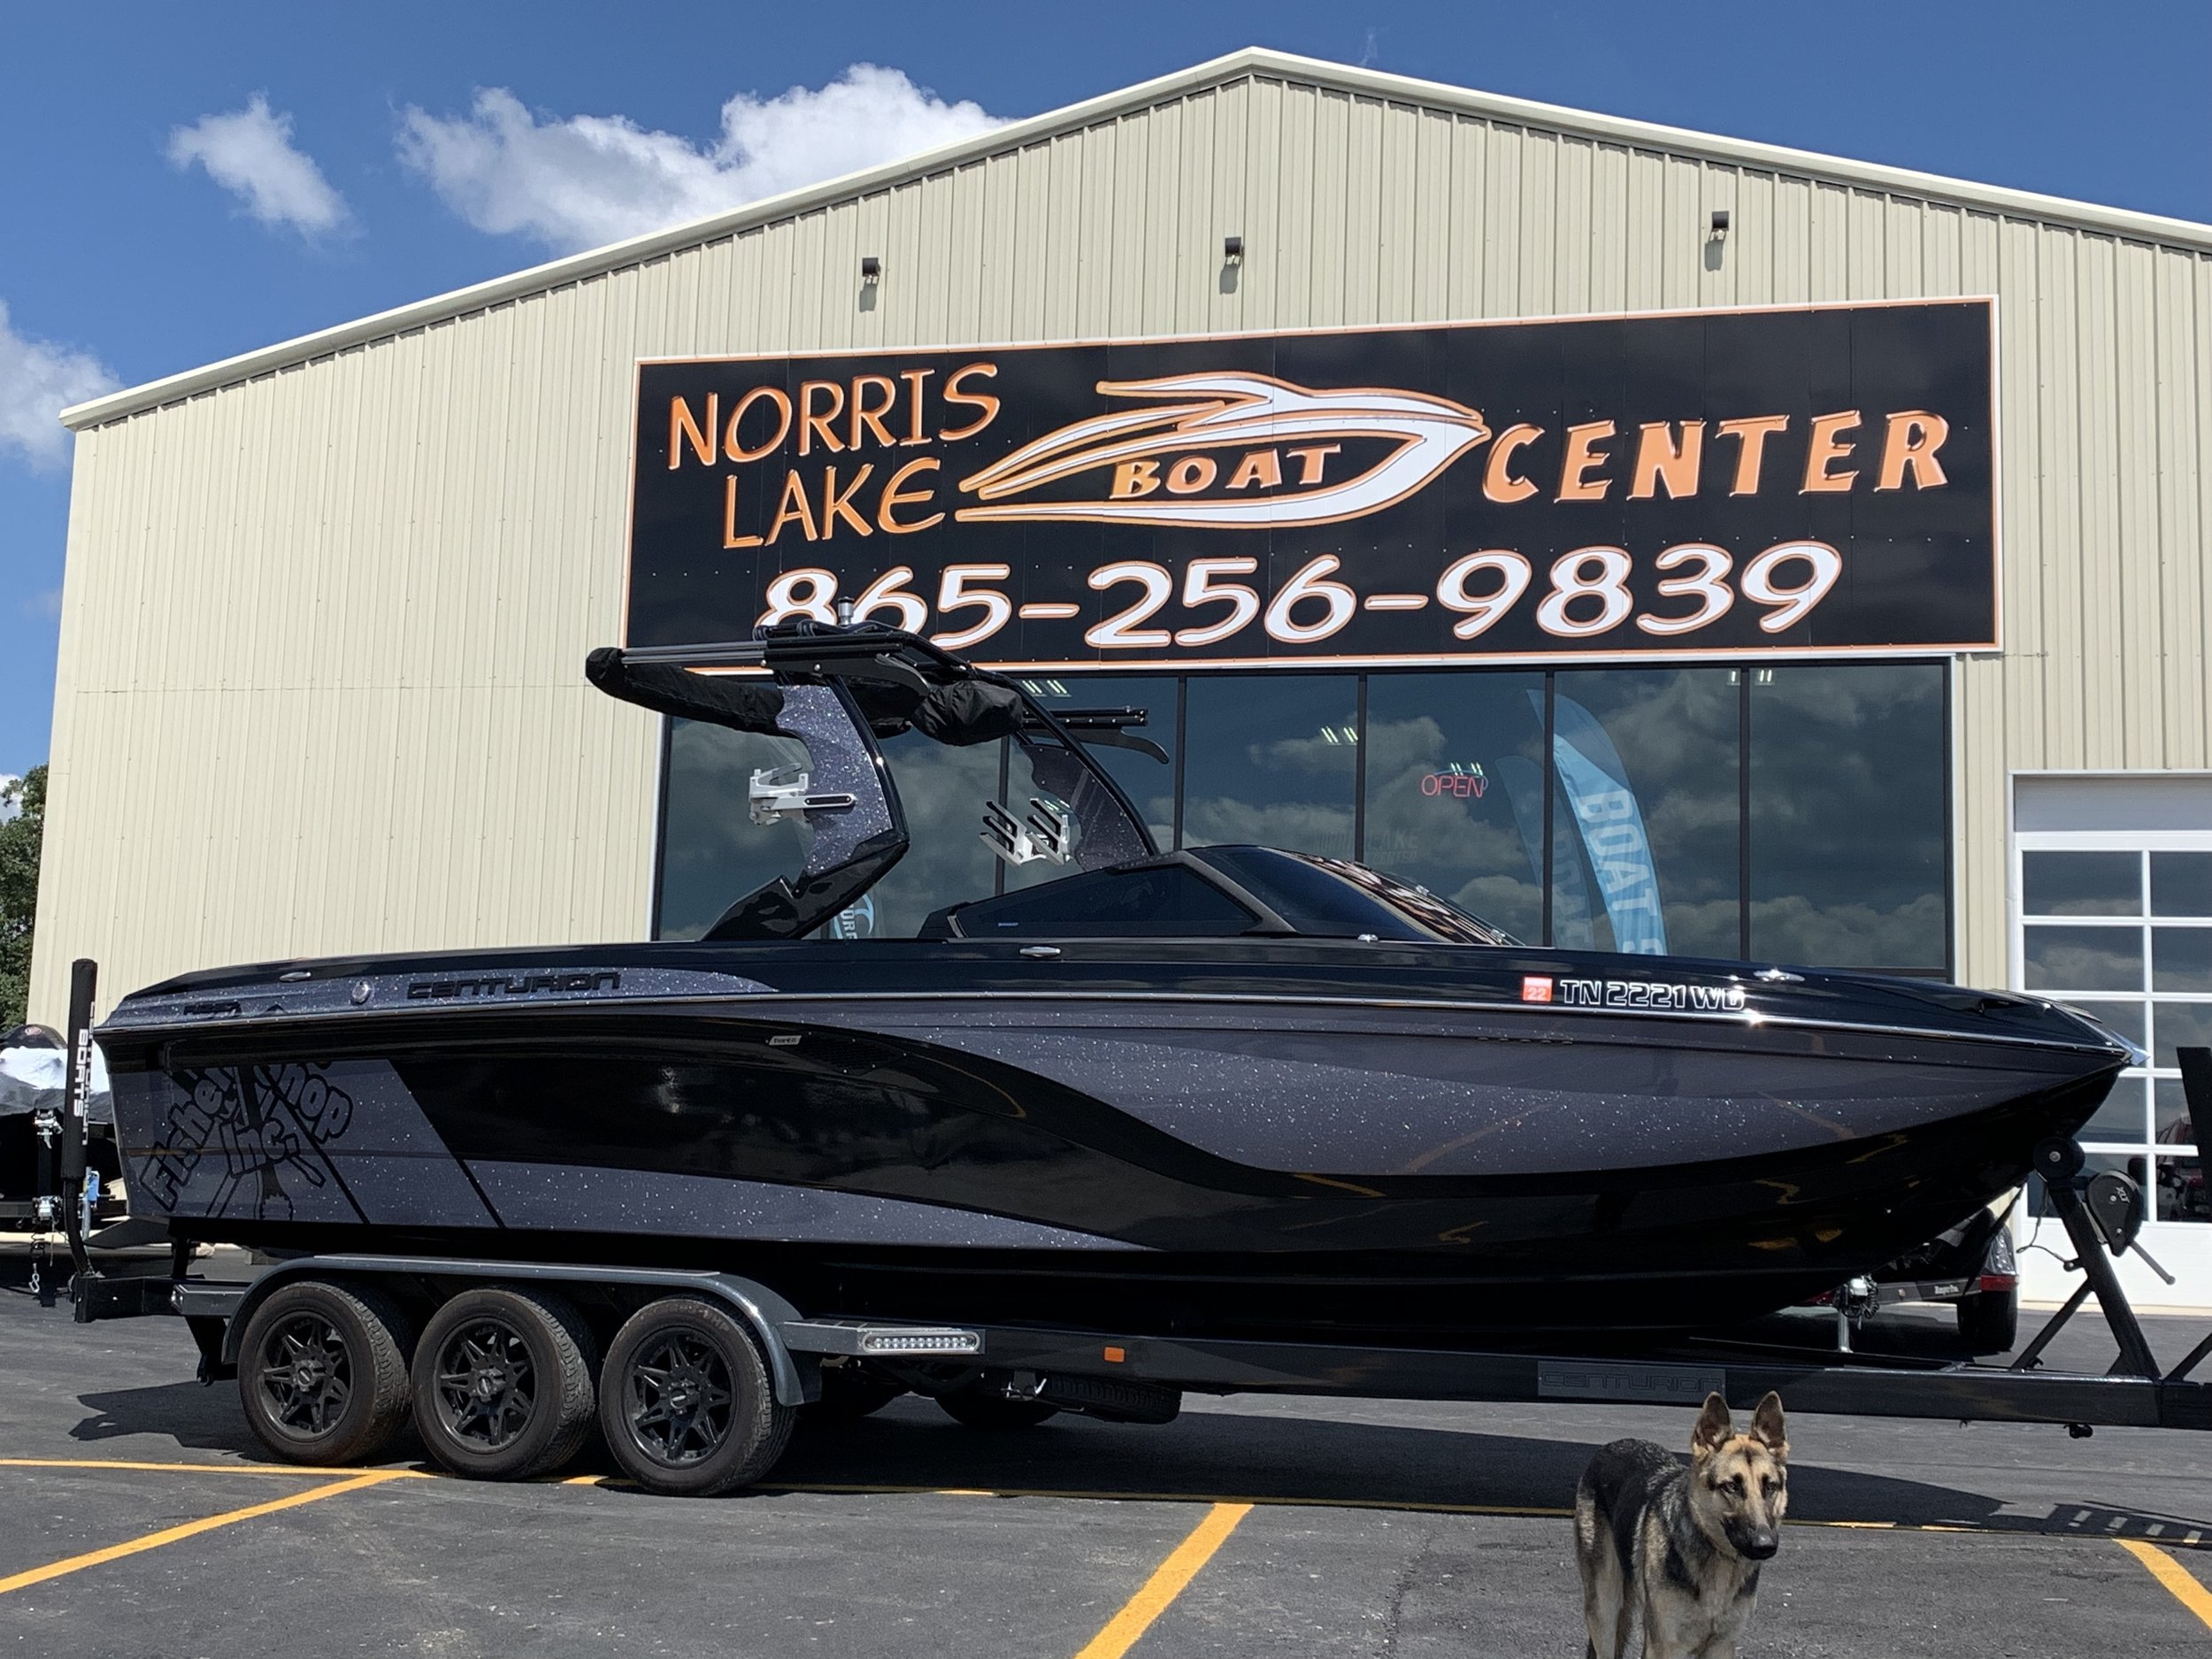 2018 Centurion 257 - This is a gorgeous 2018 Centurion 257 with a 6.2 engine, 450 hp, XL Bimini, Downfire speakers, ice breaker package, table, fully loaded! Call us for the price.